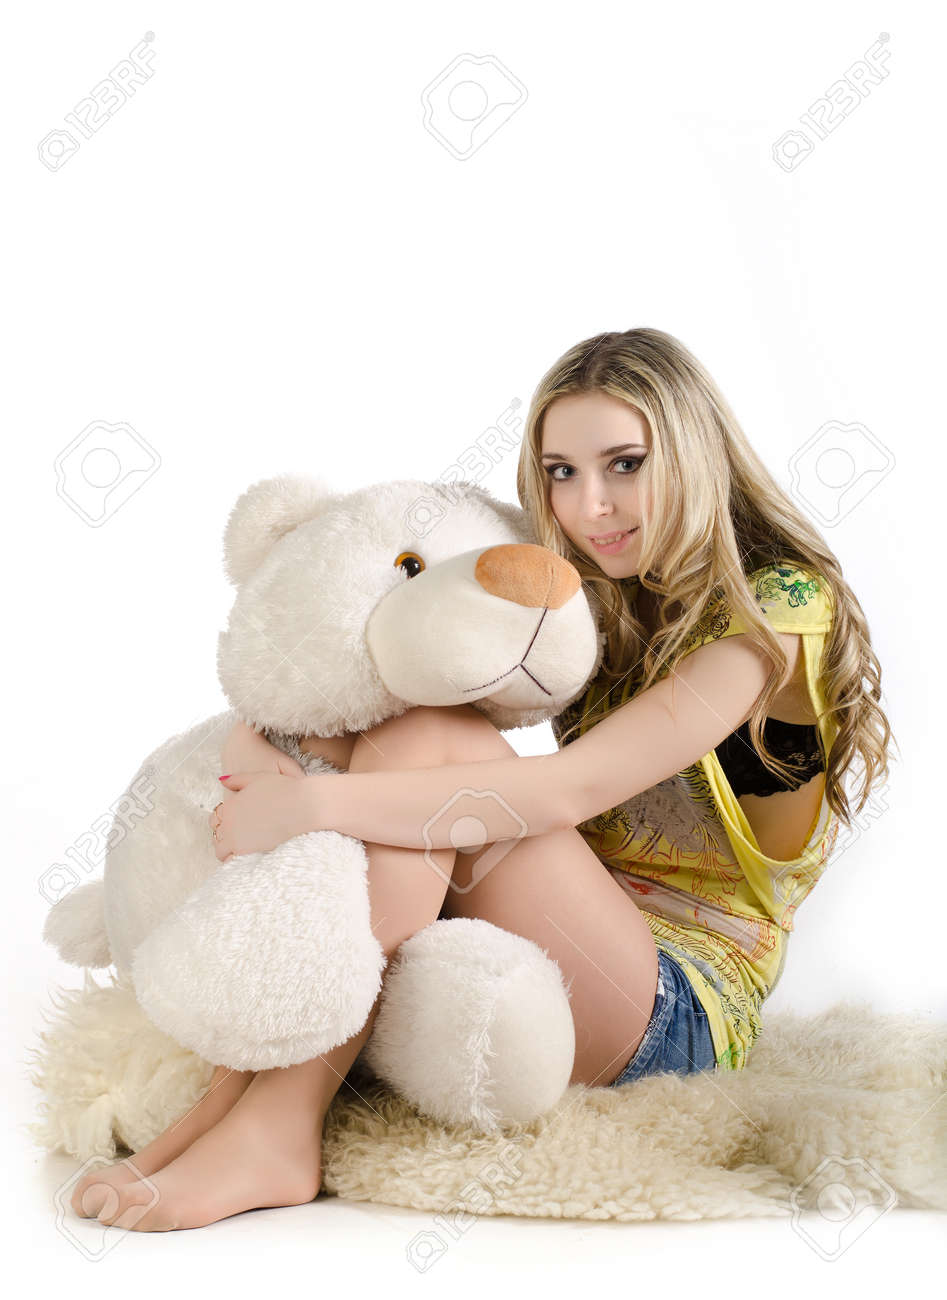 Bildresultat för woman posing with teddy bear